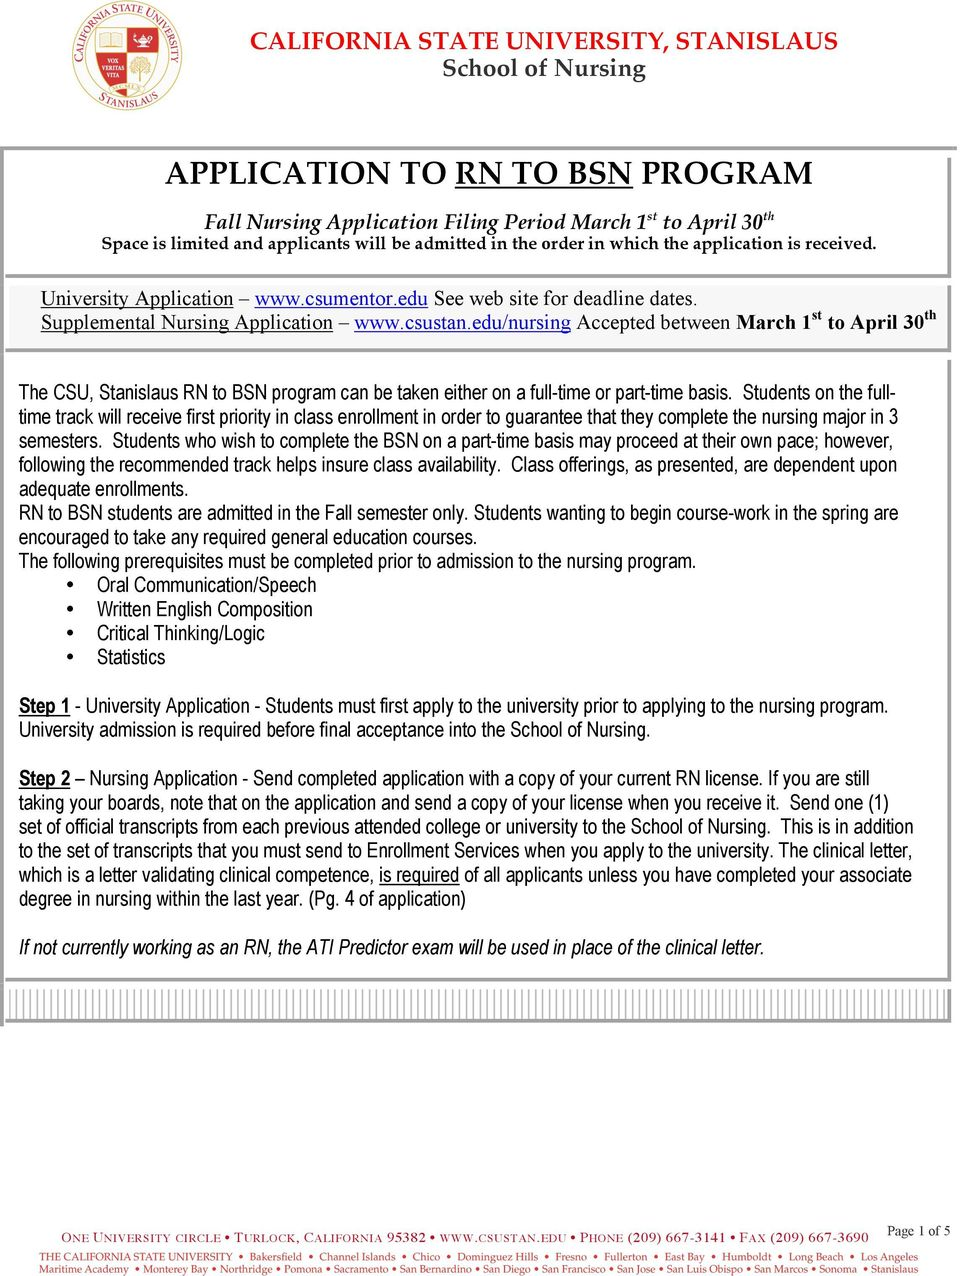 edu/nursing Accepted between March 1 st to April 30 th The CSU, Stanislaus RN to BSN program can be taken either on a full-time or part-time basis.